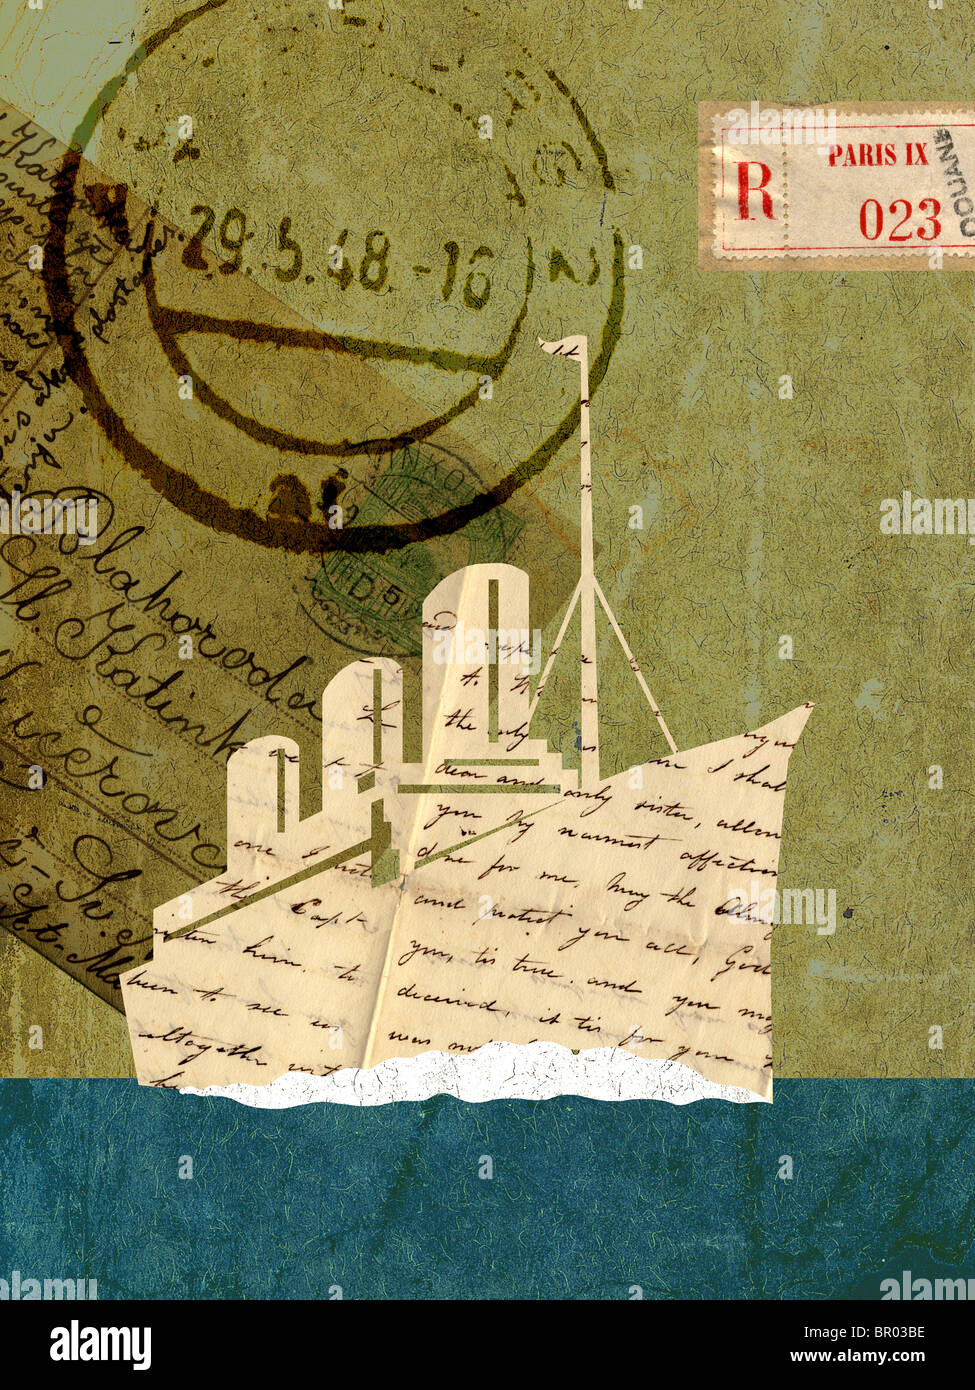 Collage with a cruise ship, vintage letters and stamps - Stock Image